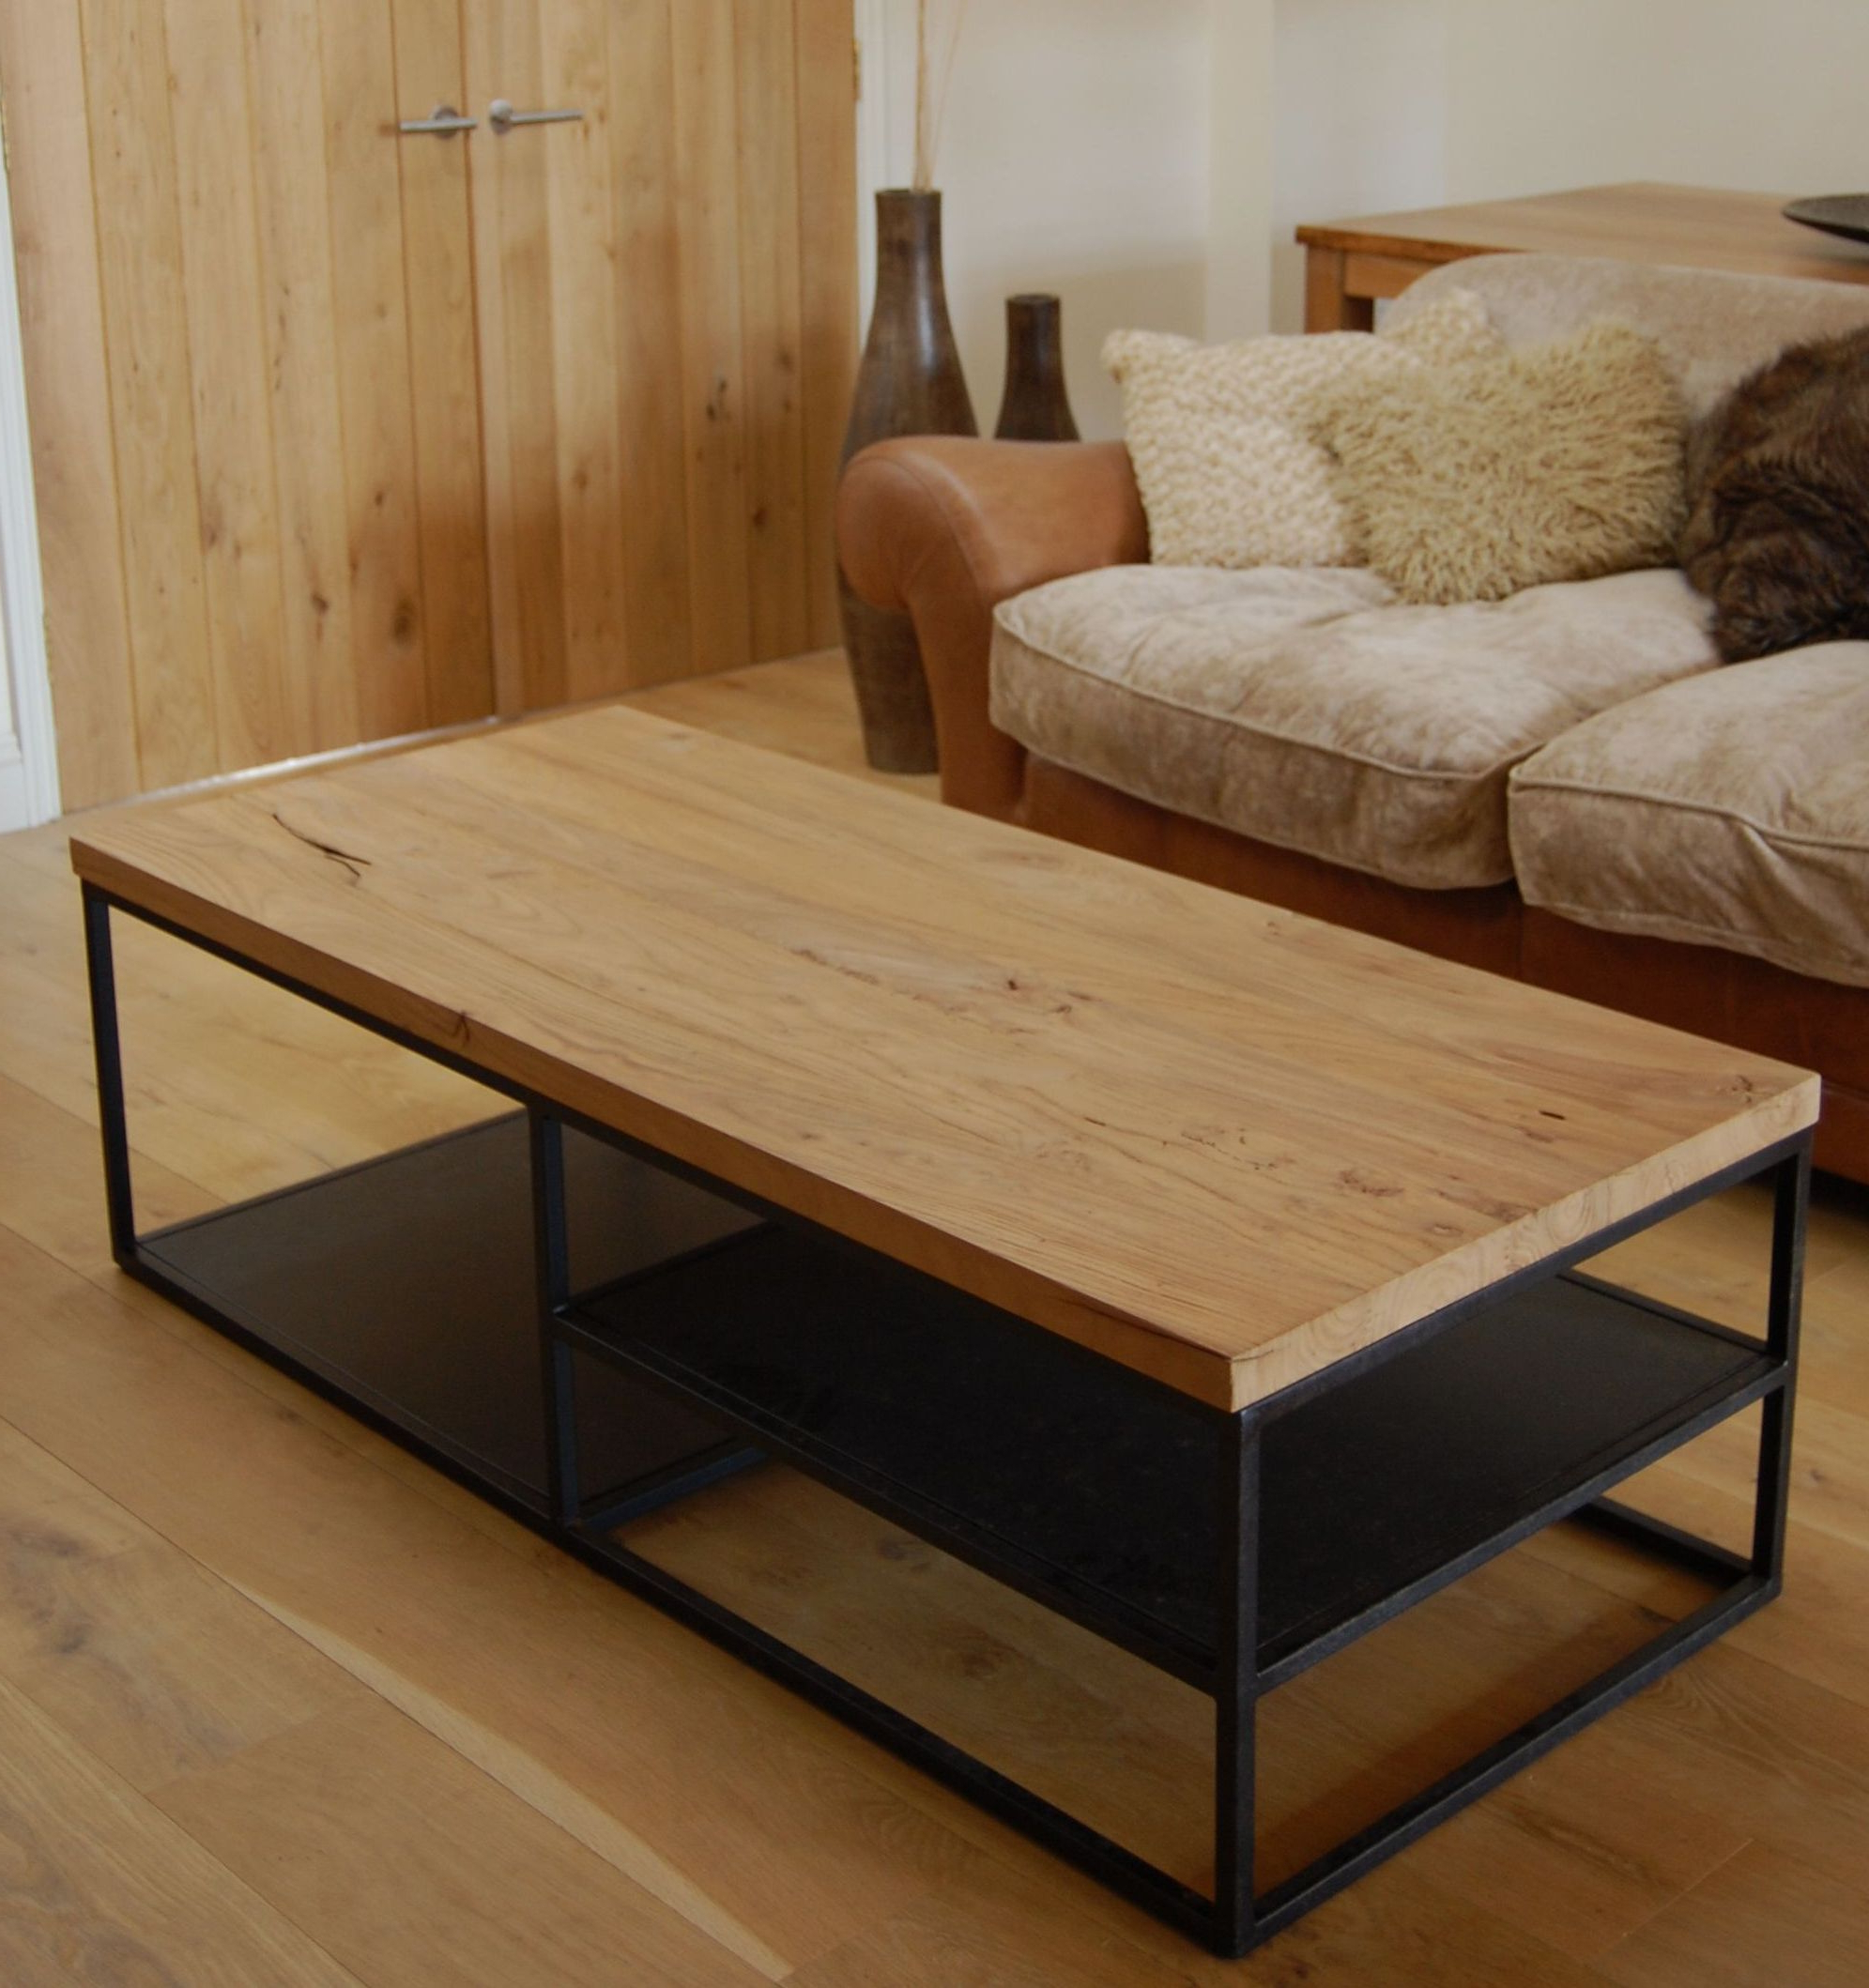 Trendy Iron Wood Coffee Tables With Wheels Inside Reclaimed Wood And Iron Coffee Table (View 6 of 20)